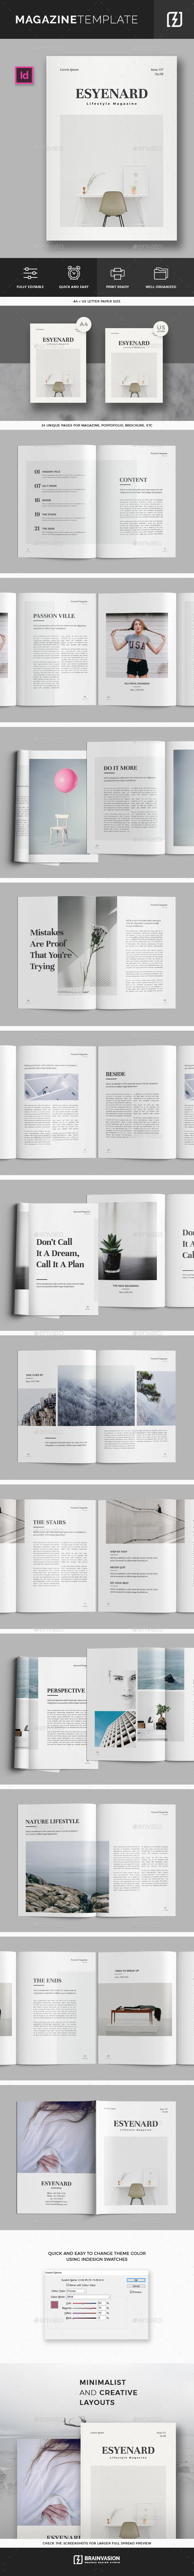 Magazine Template Vol.03 - Magazines Print Templates